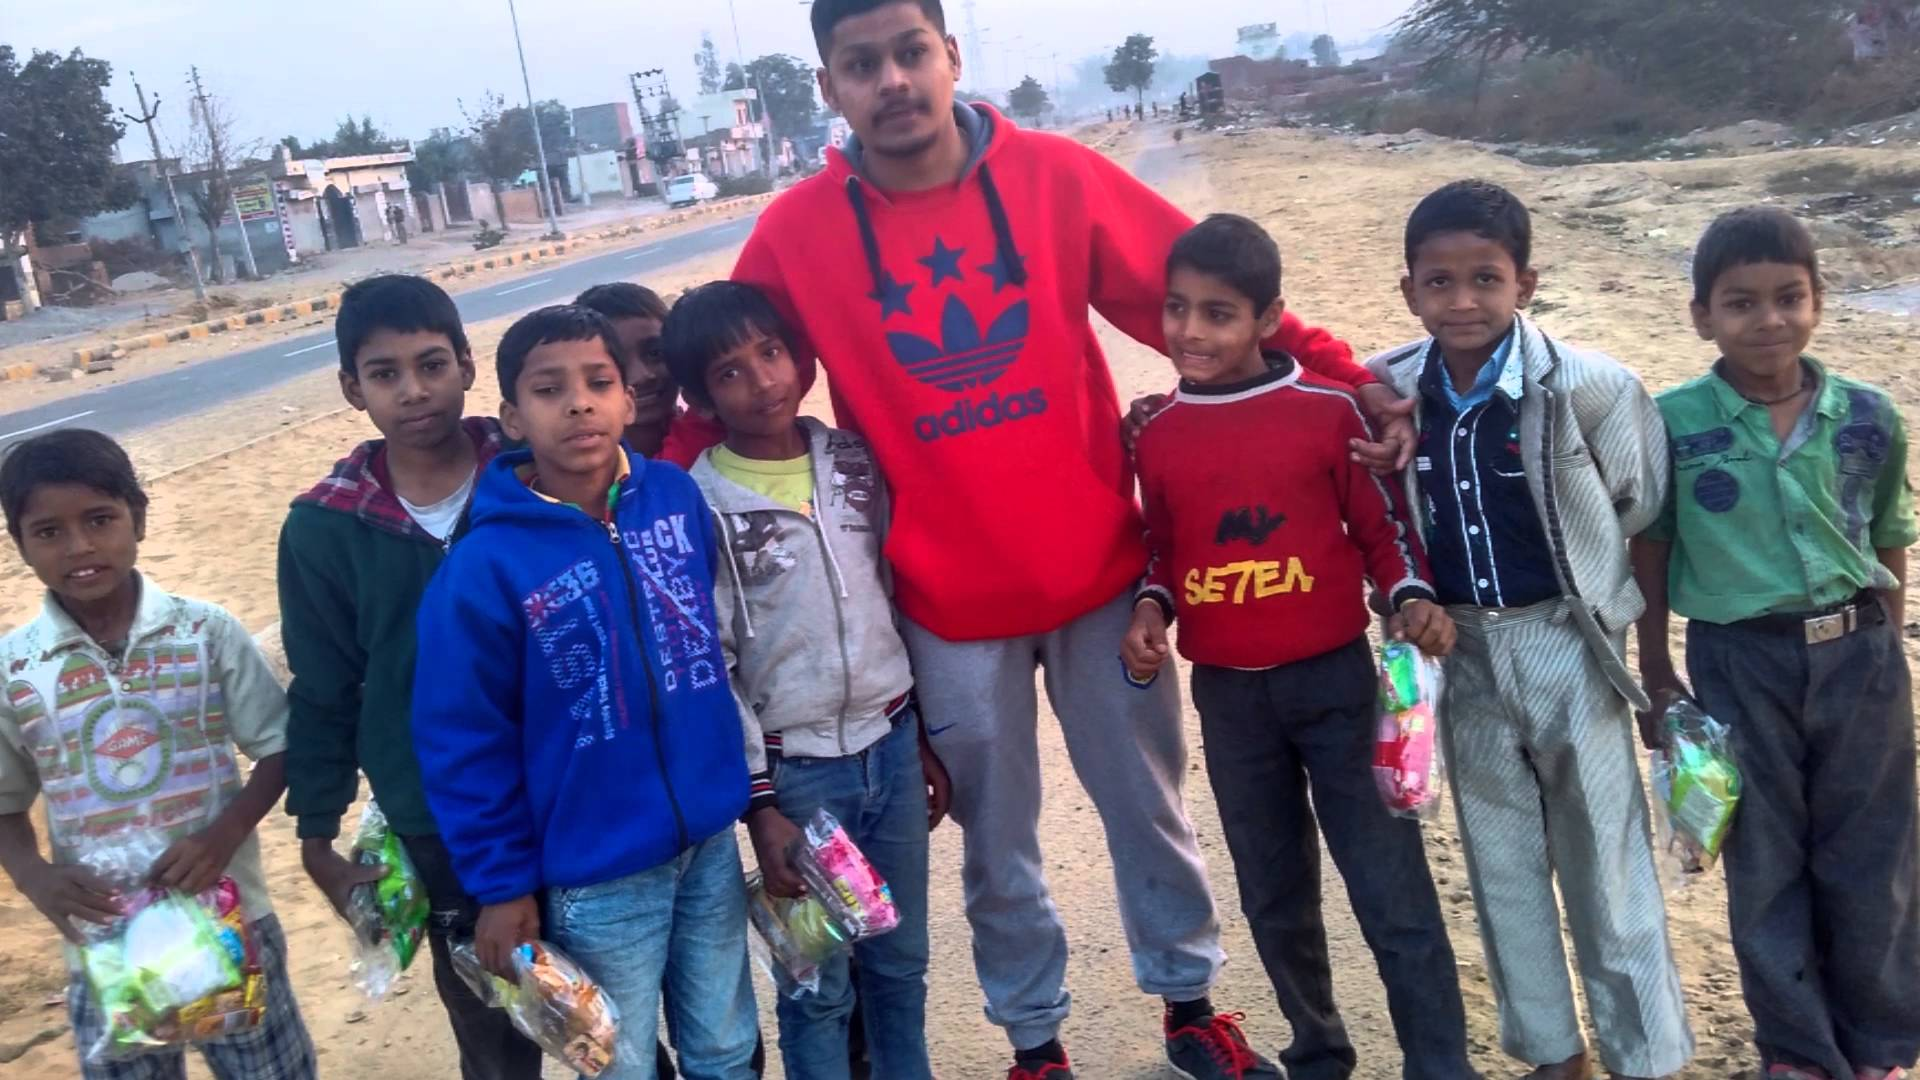 Giving Free Gifts To Slum Poor Kids On Christmas In India .